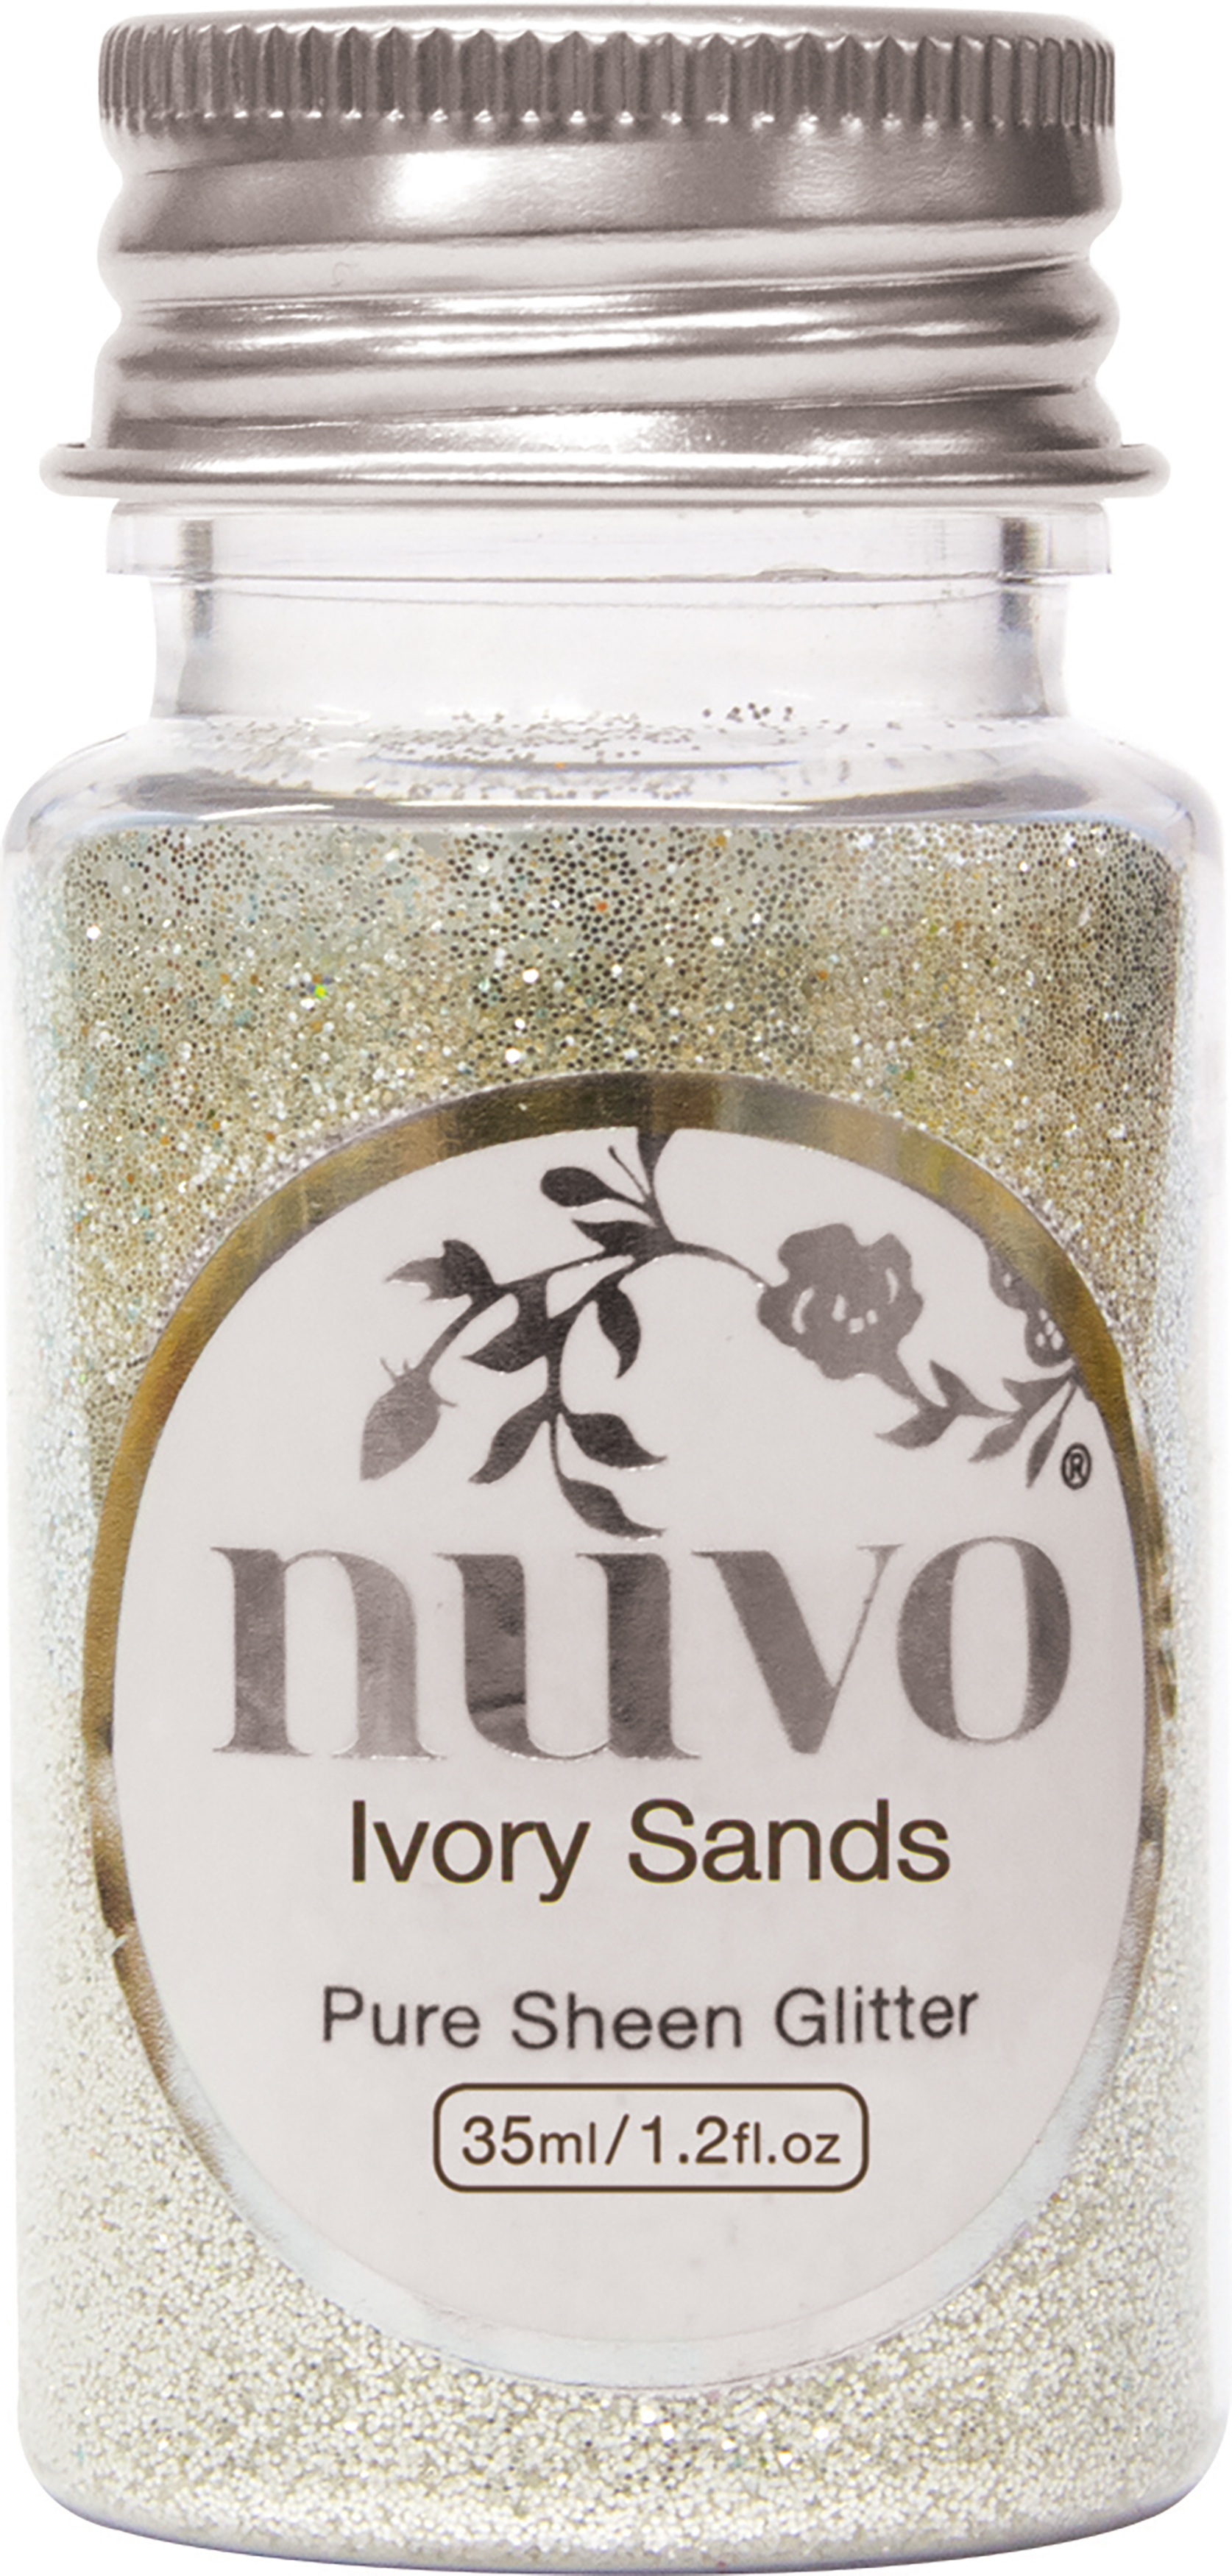 Nuvo Pure Sheen Glitter 1oz-Ivory Sands